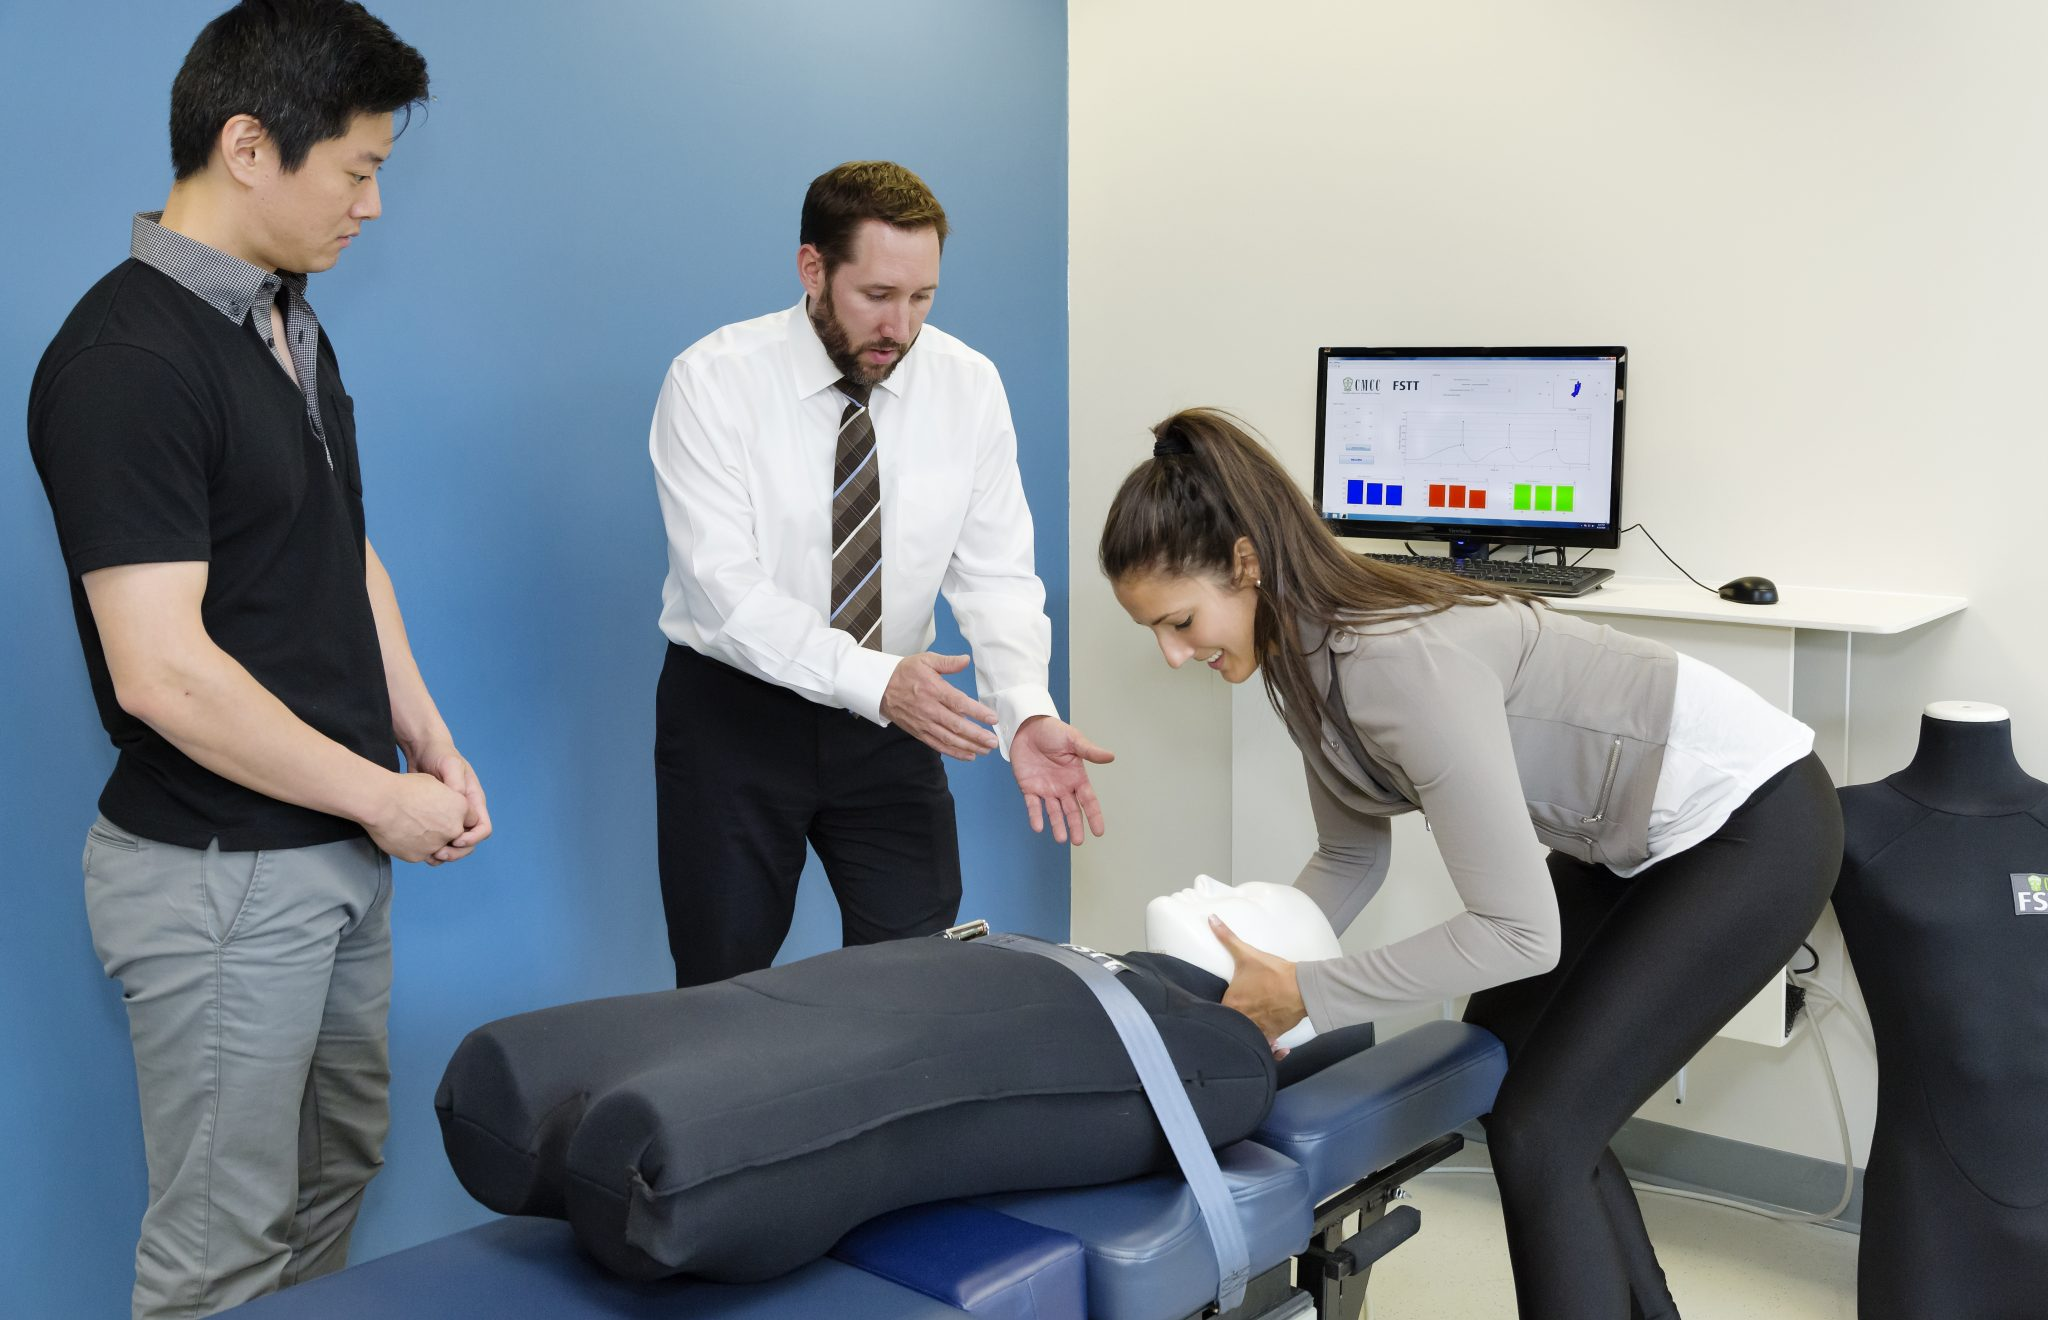 Female chiropractic student practicing adjustment technique in simulation lab